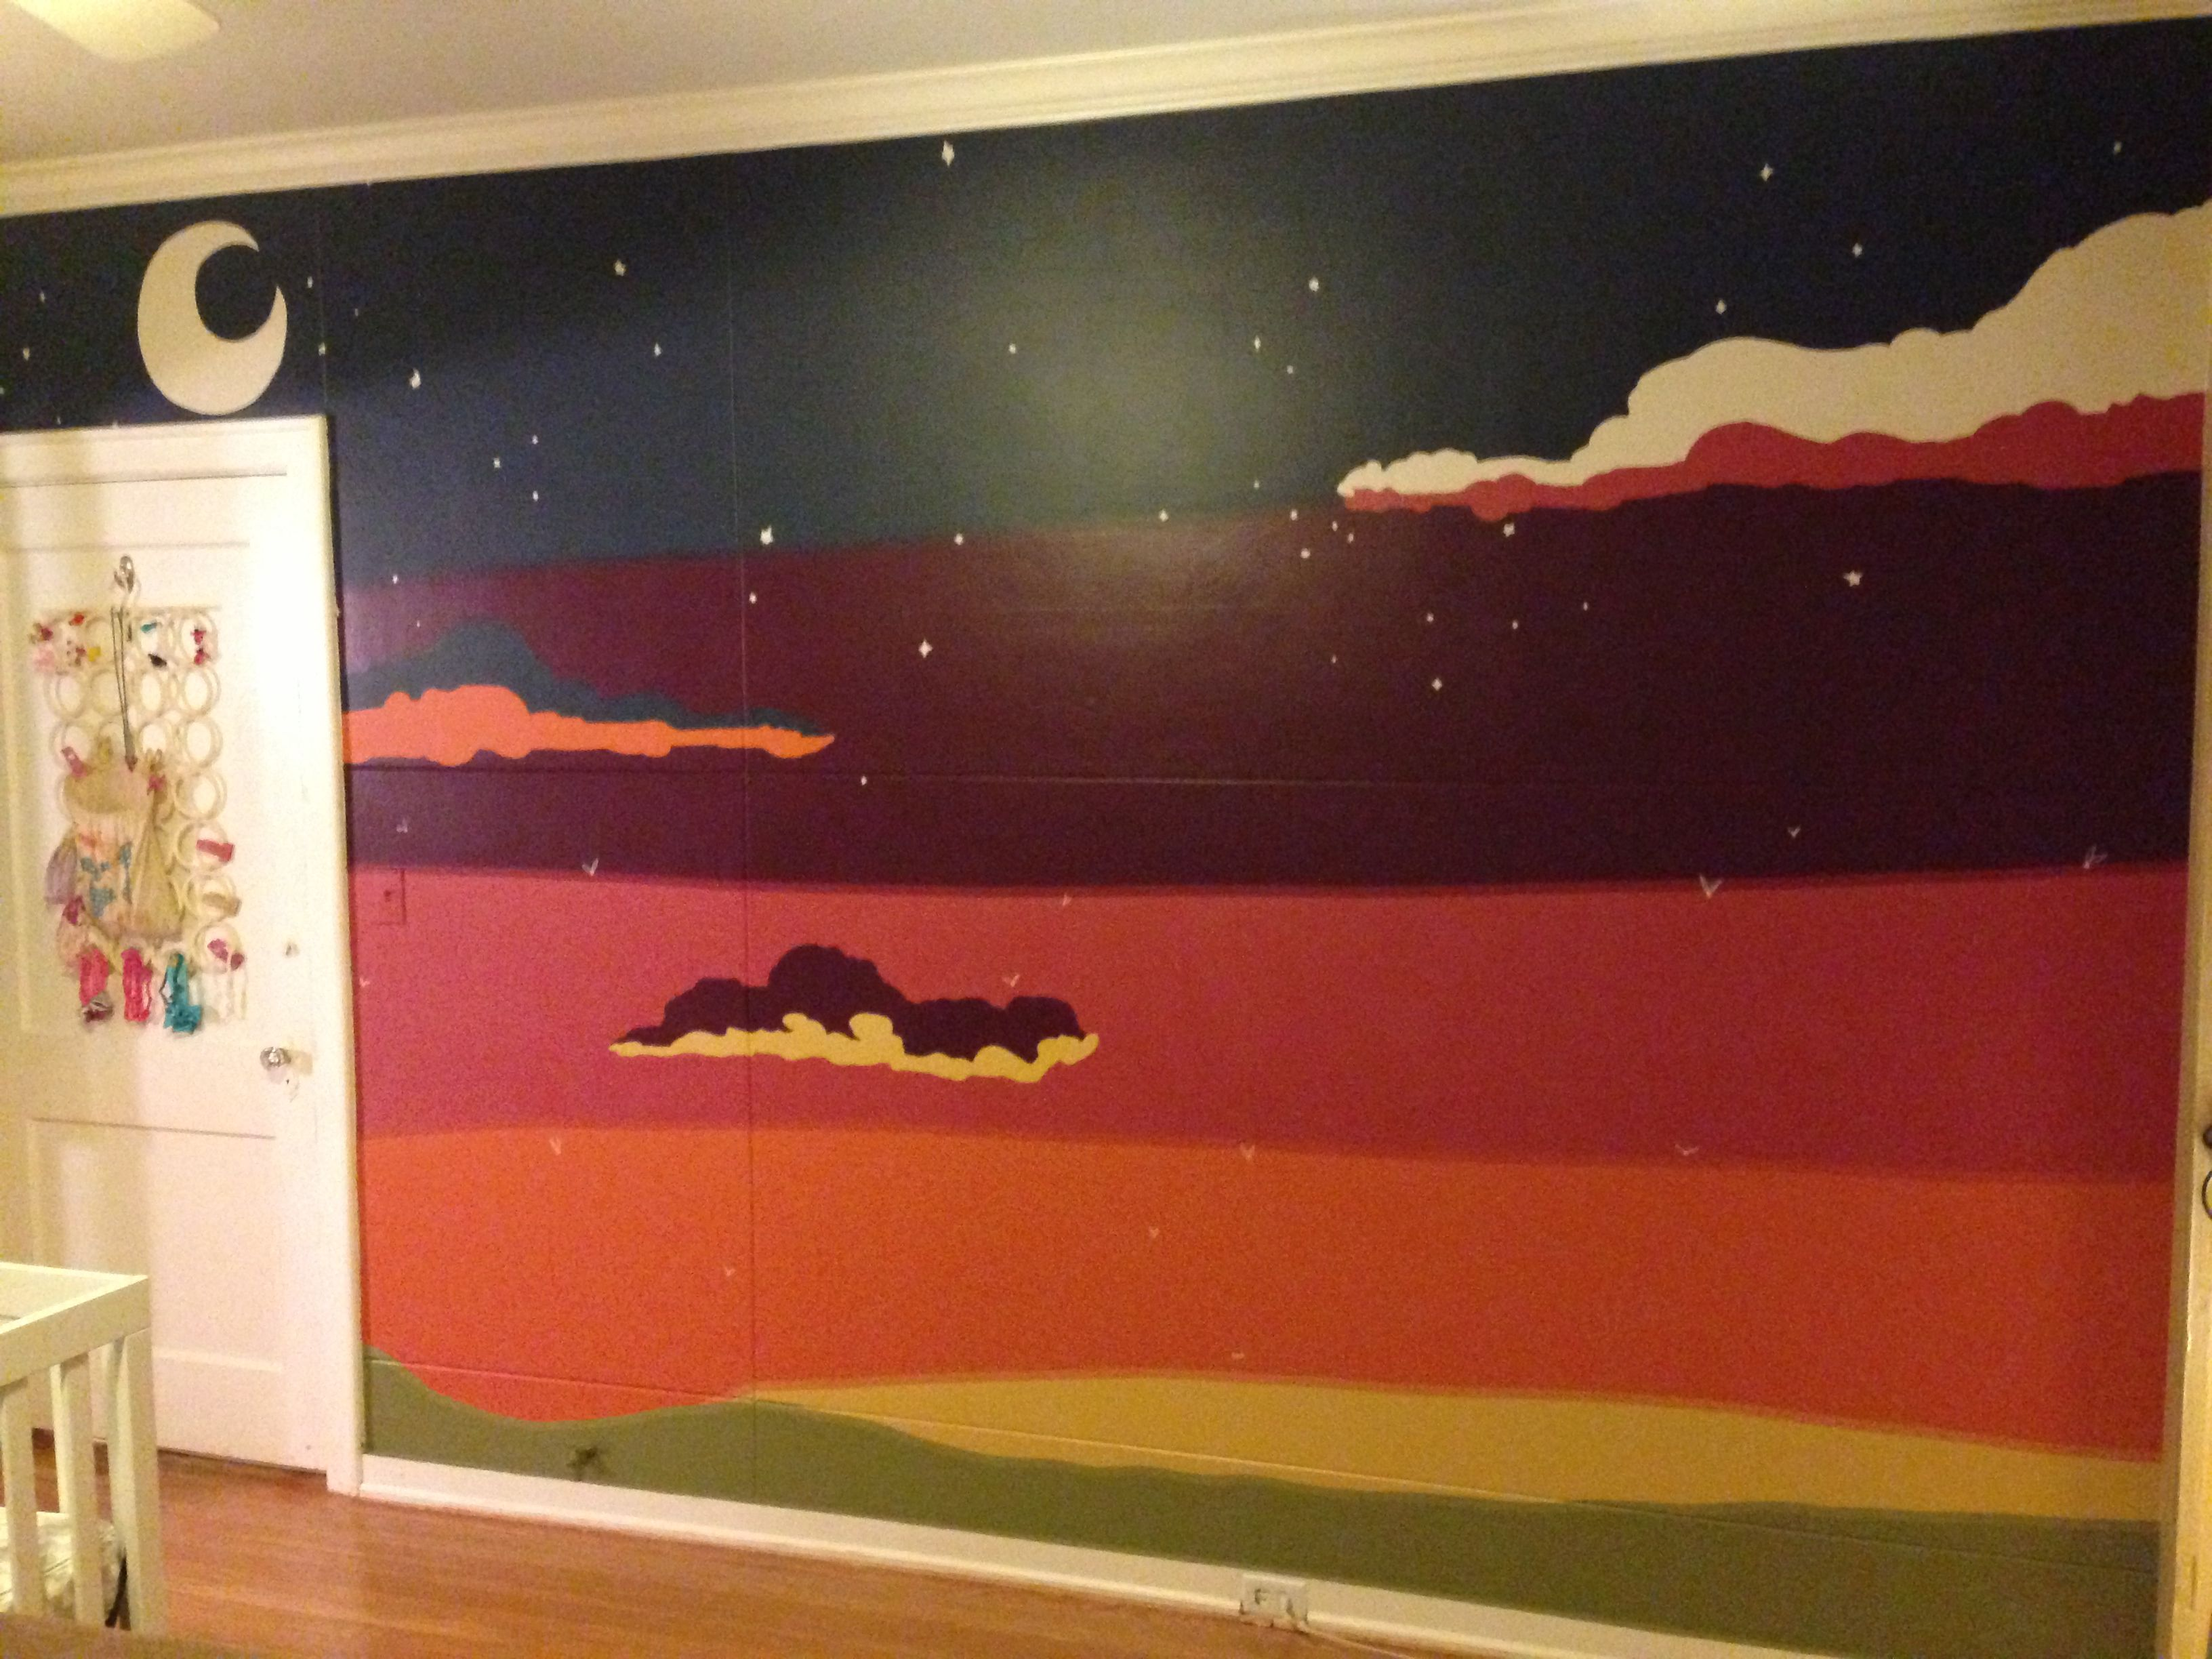 Finished Painted Wall Mural Of Sunset And Fireflies